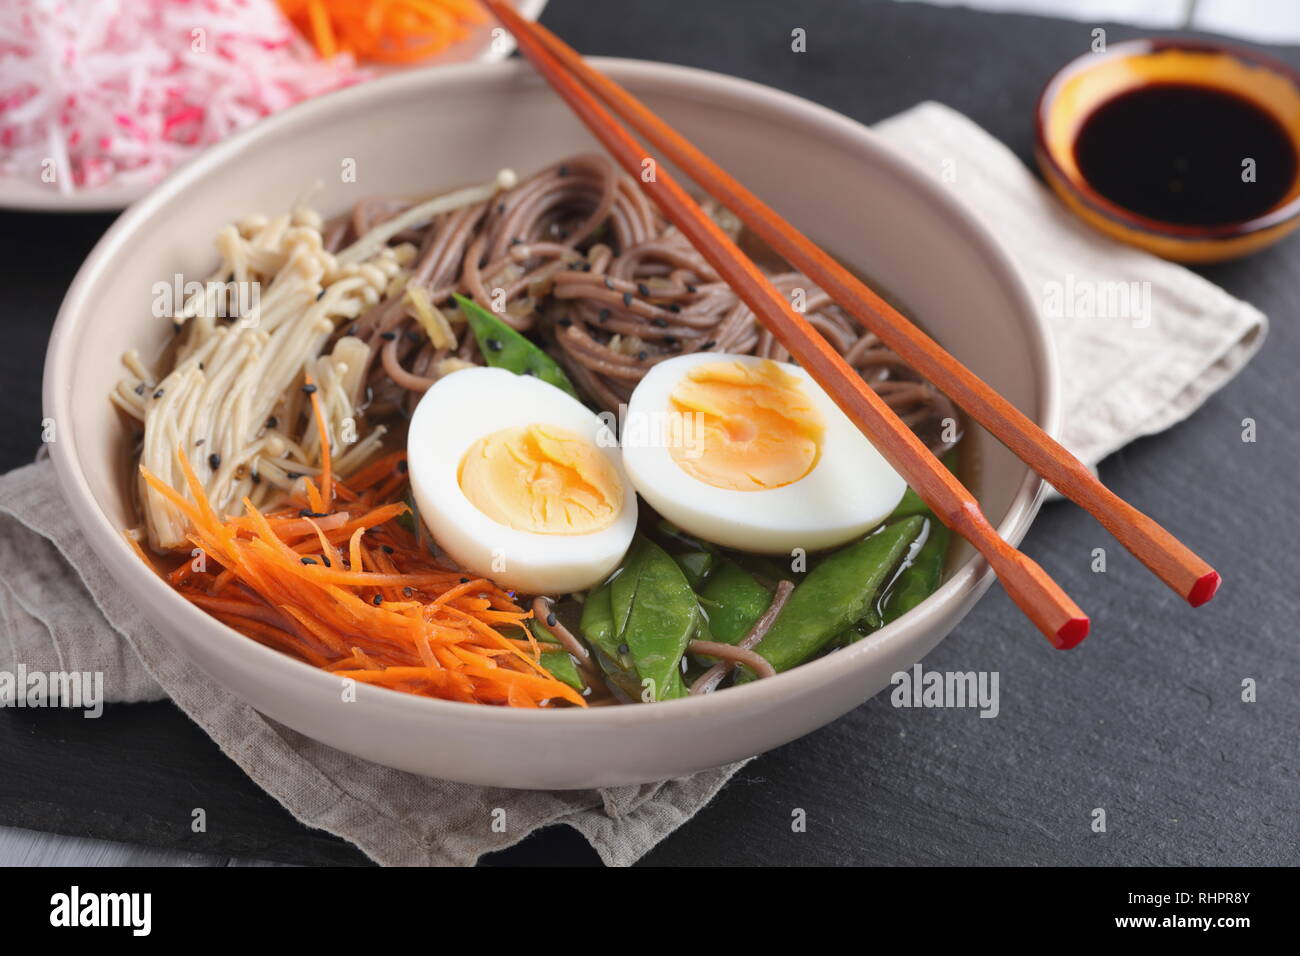 Japanese soup with Enoki mushrooms, soba noodles, boiled egg, carrot, radish, green beans, and soy sauce - Stock Image